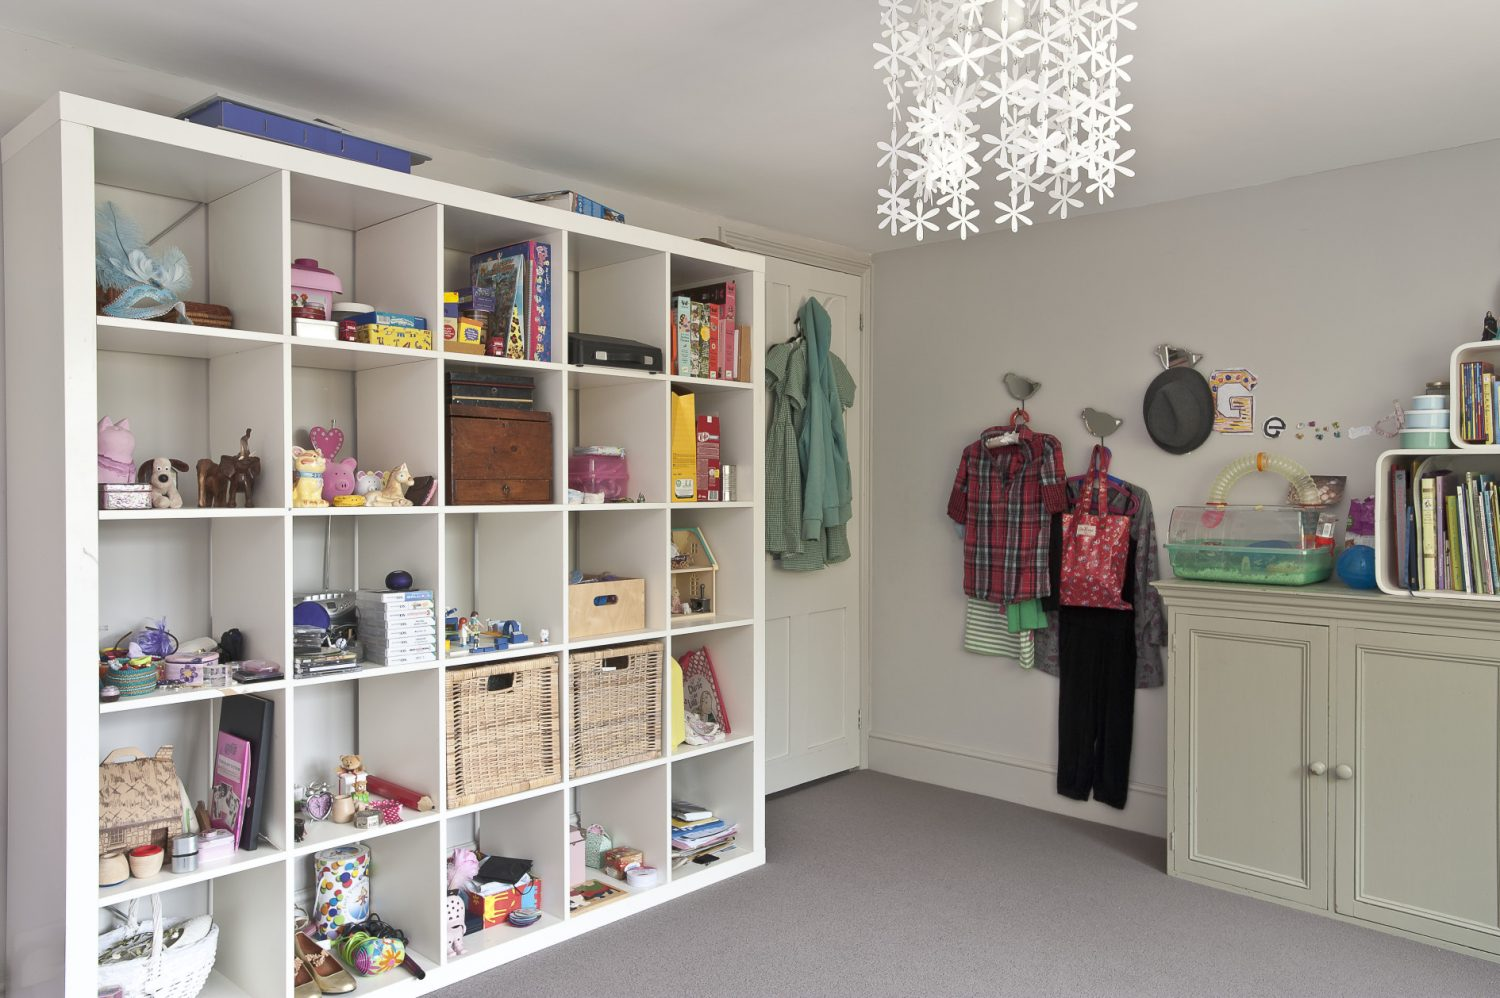 modular storage unit provides an attractive display whilst at the same time keeping the floor free of clutter